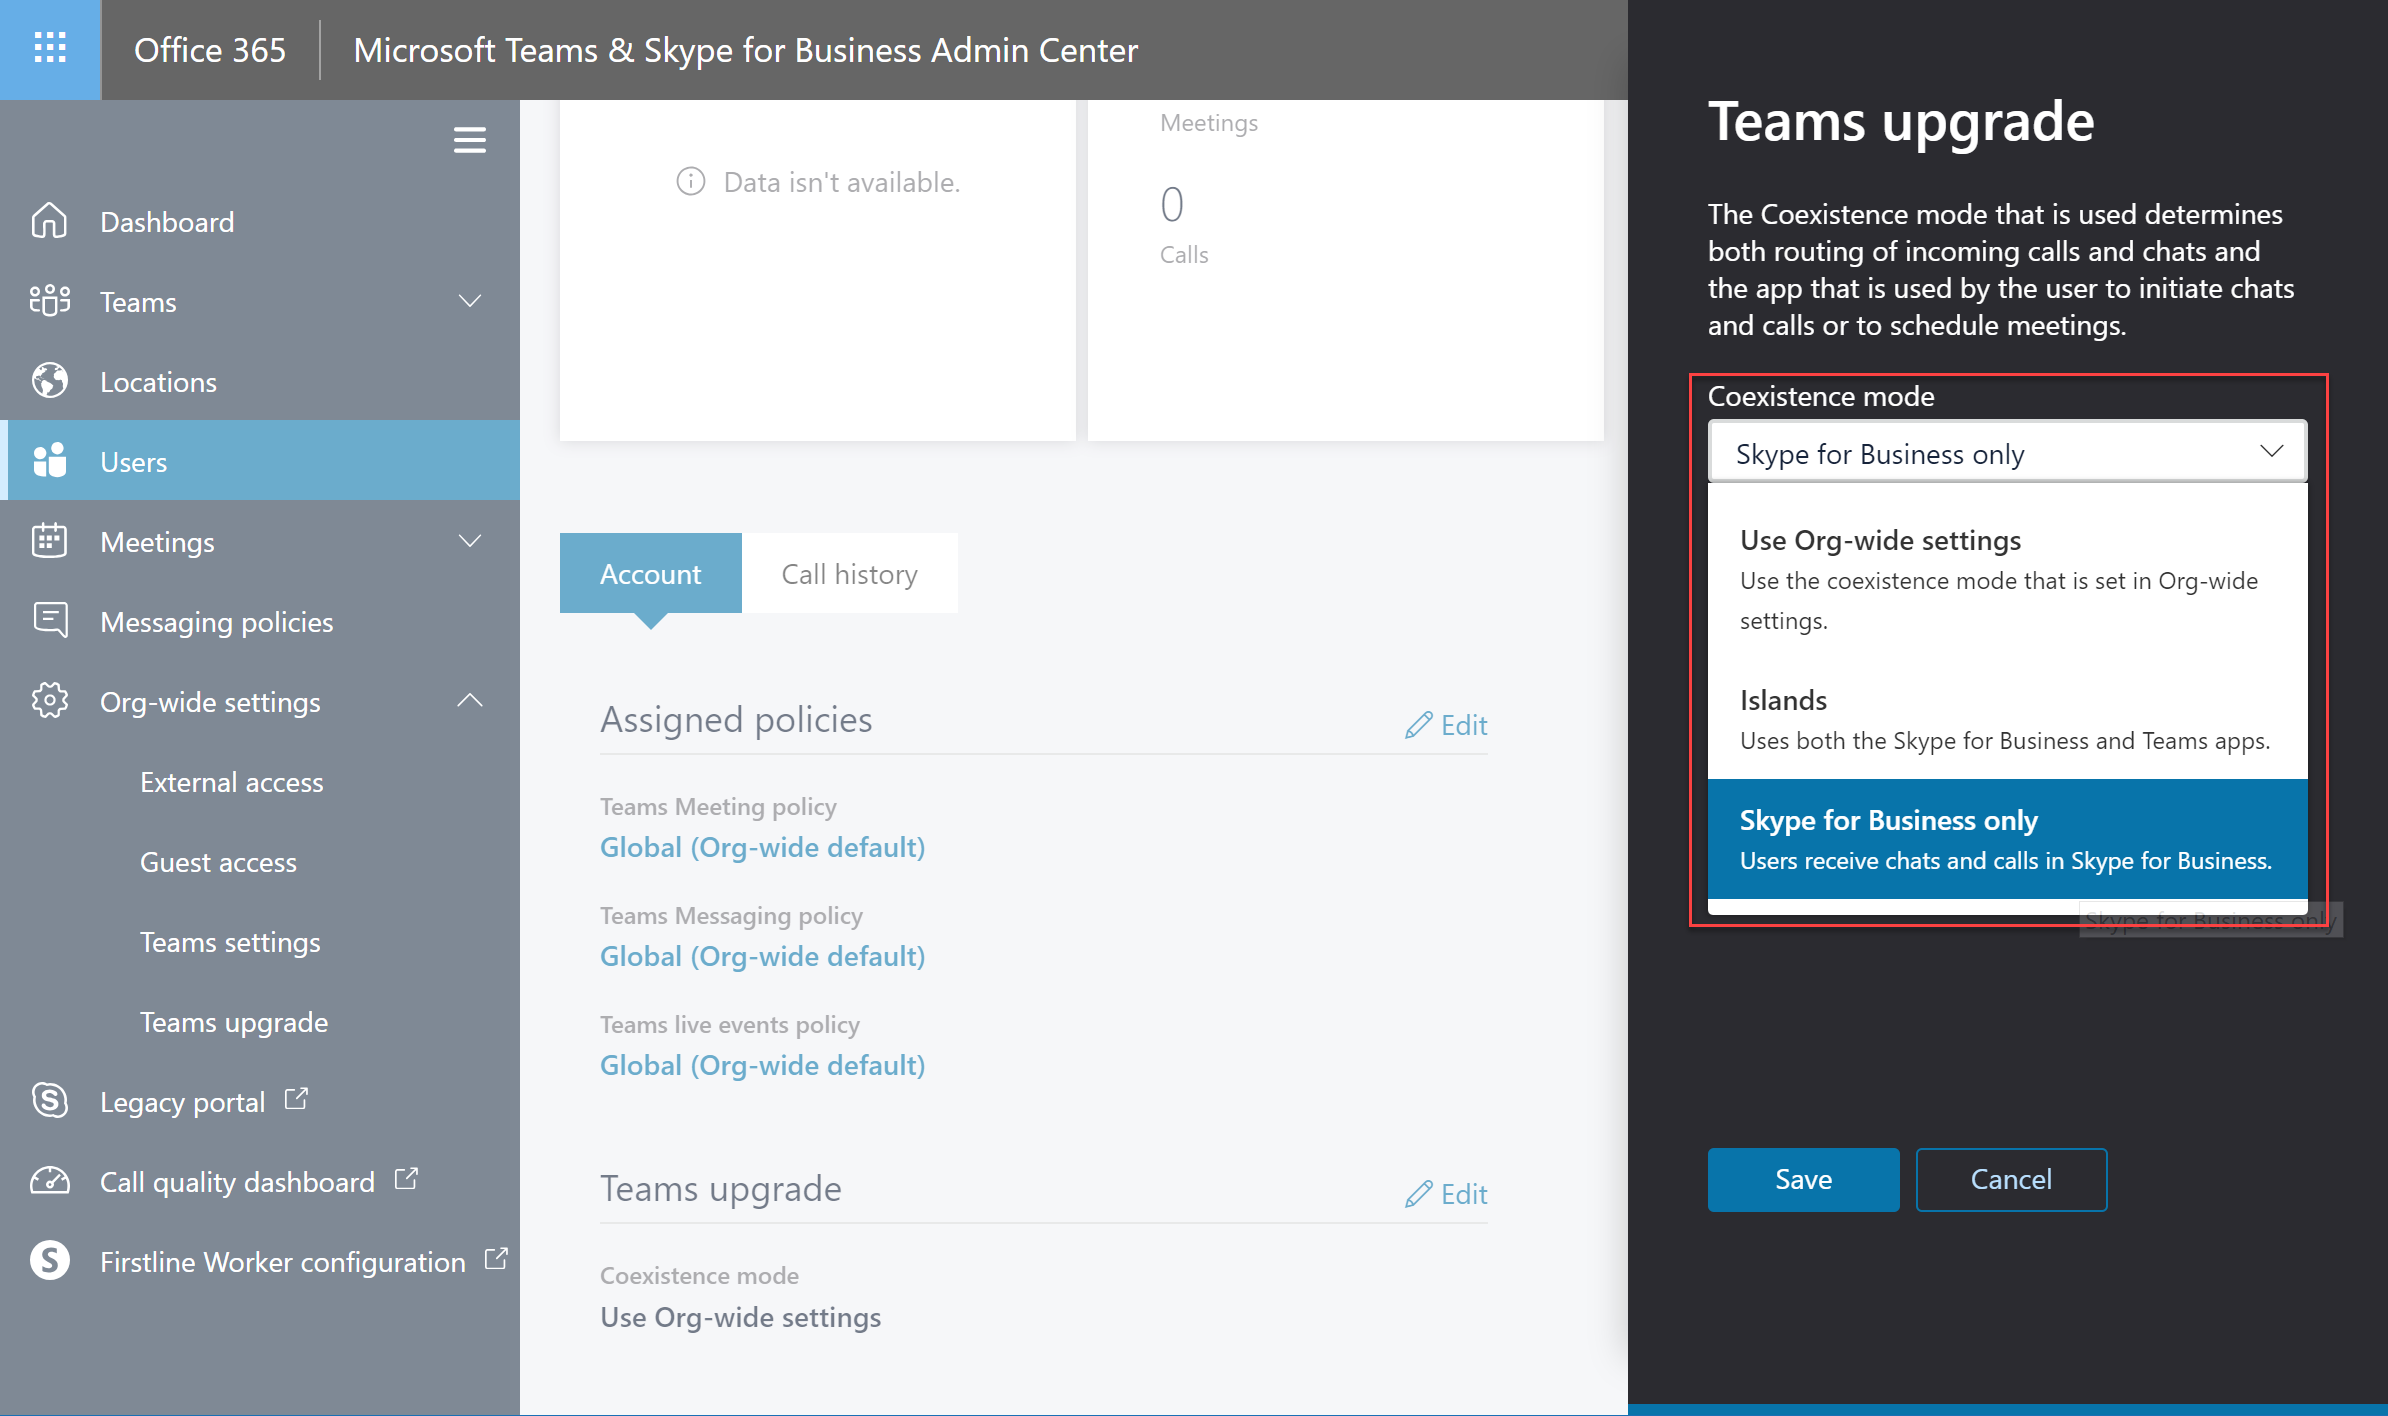 Enabling Skype for Business in a new Teams-Only Office 365 Tenant